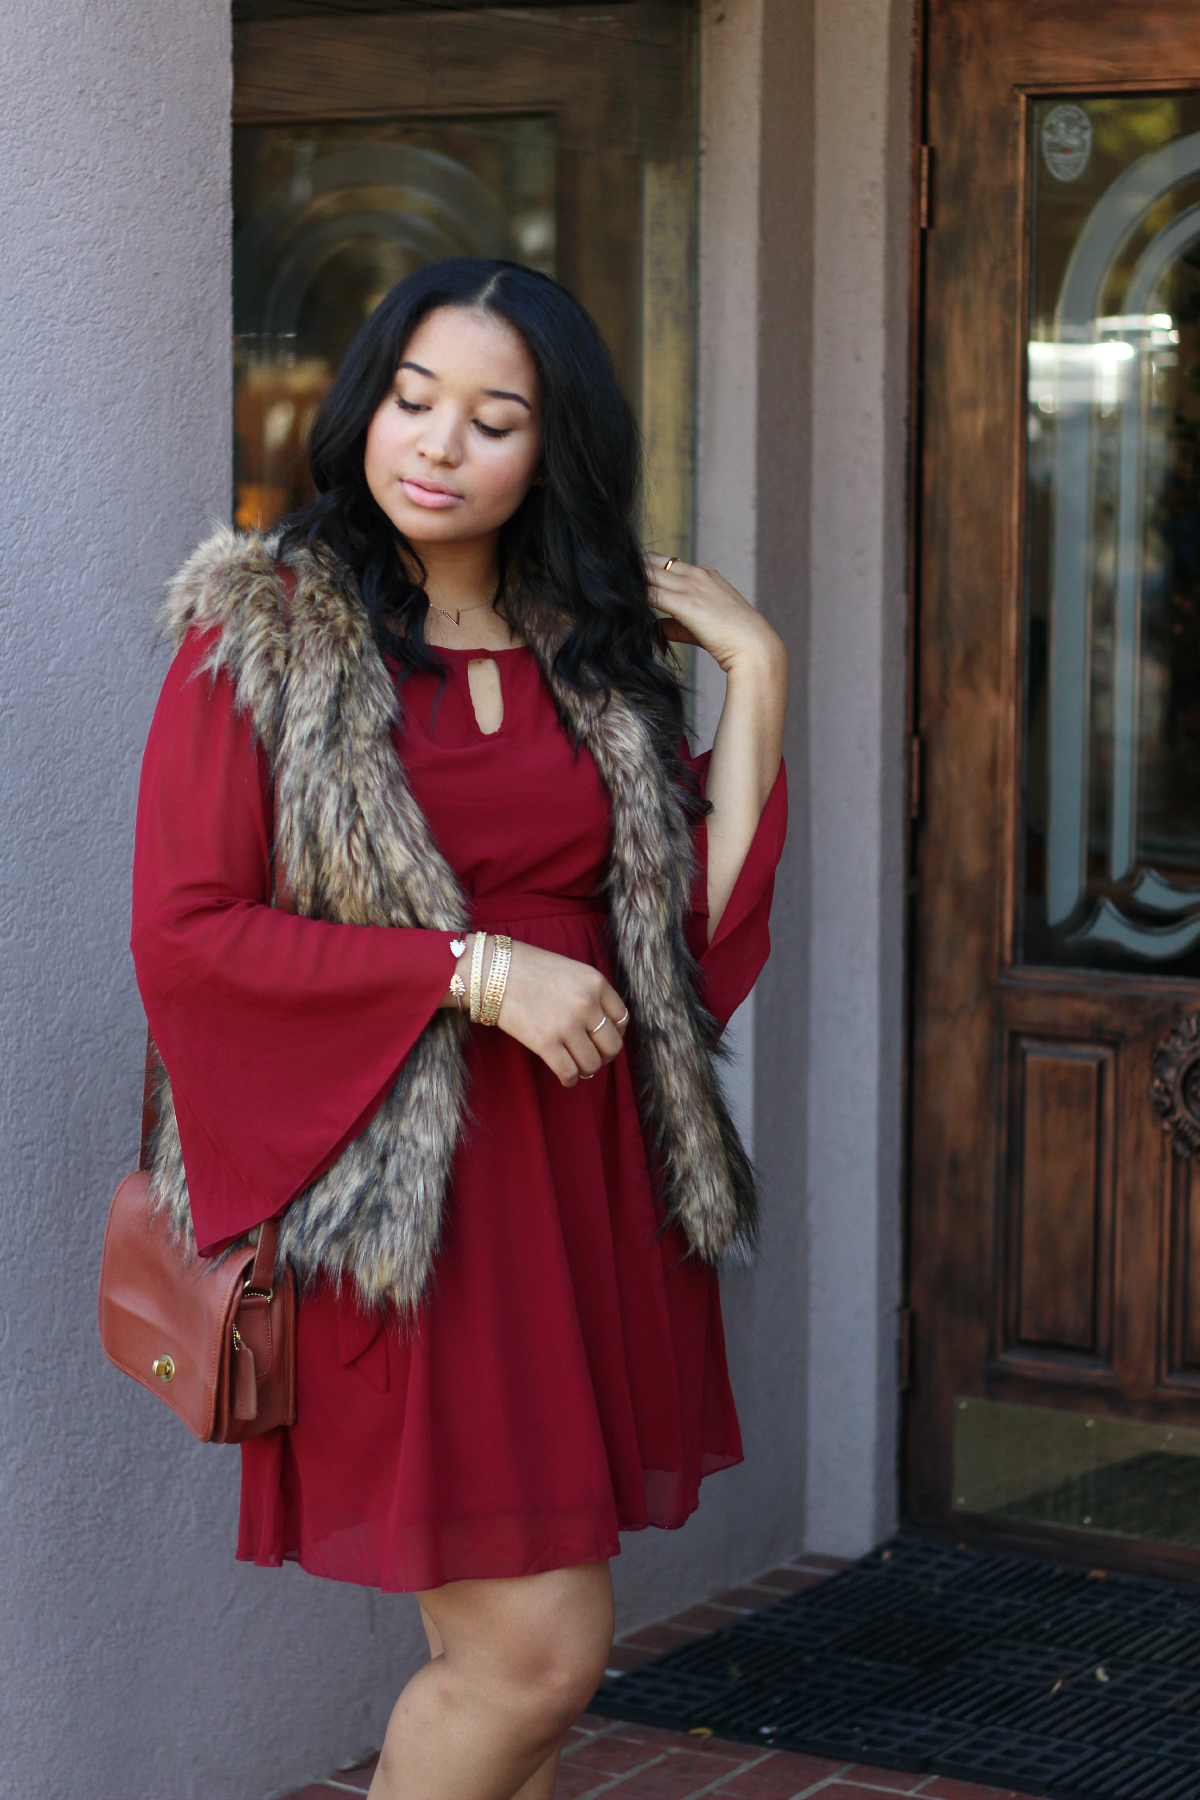 Burgundy Dress + Fur Vest